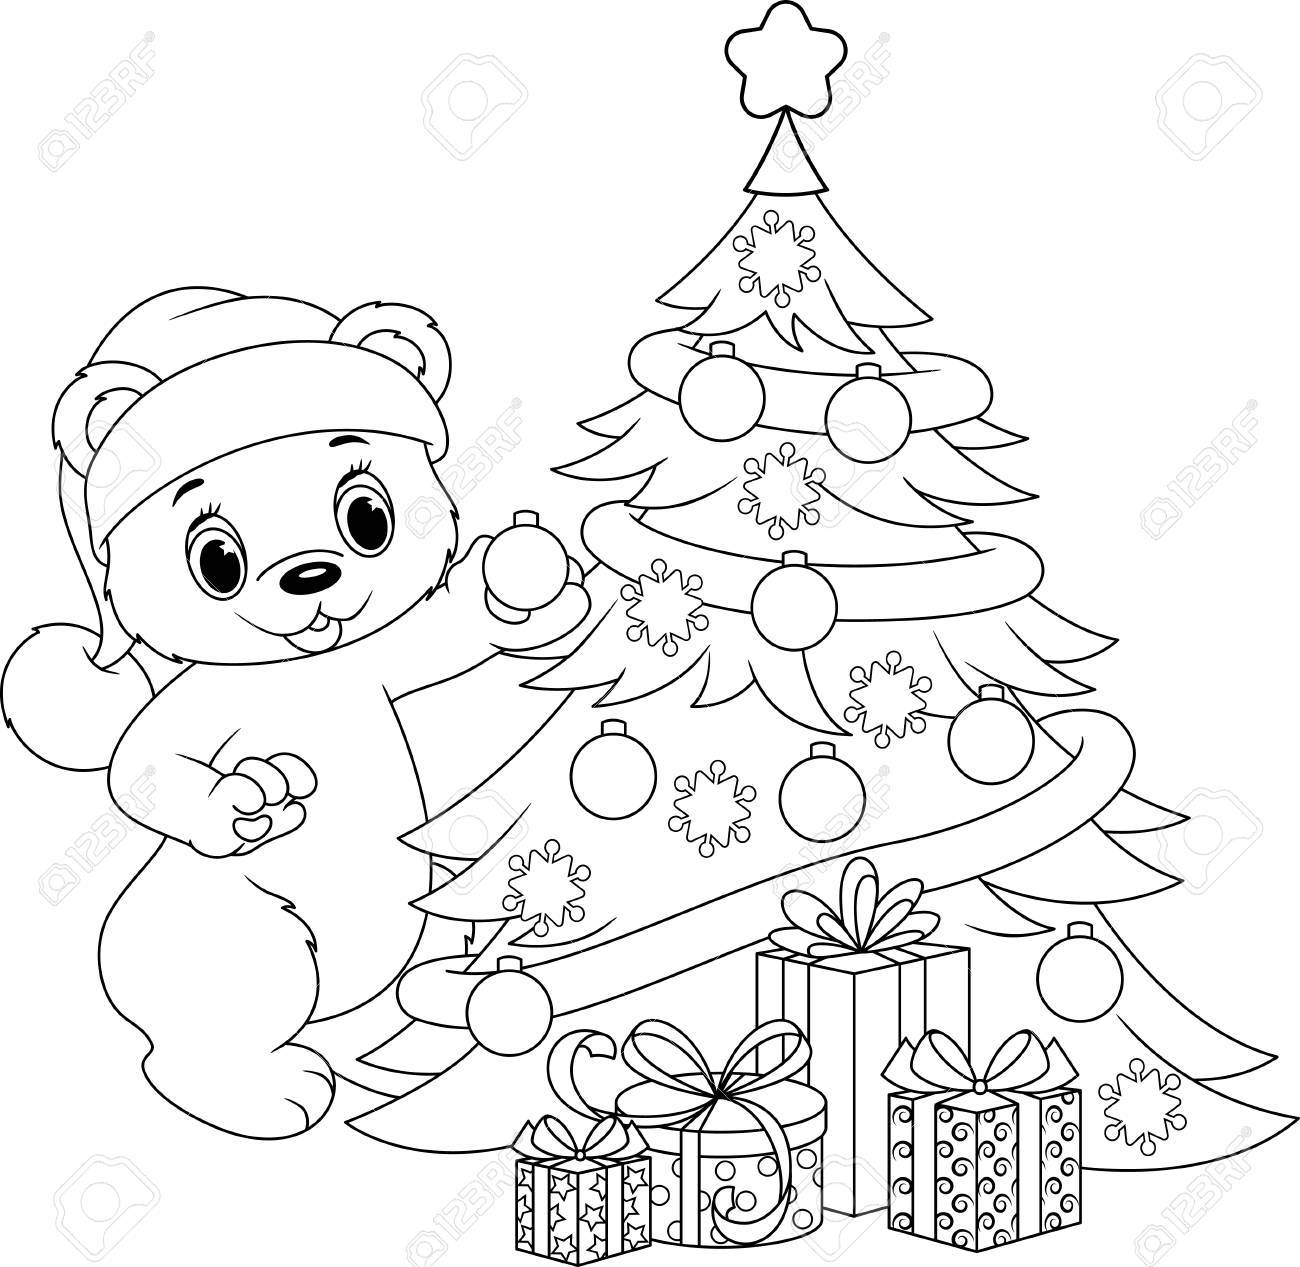 Christmas Tree Coloring Page Royalty Free Cliparts, Vectors, And ...